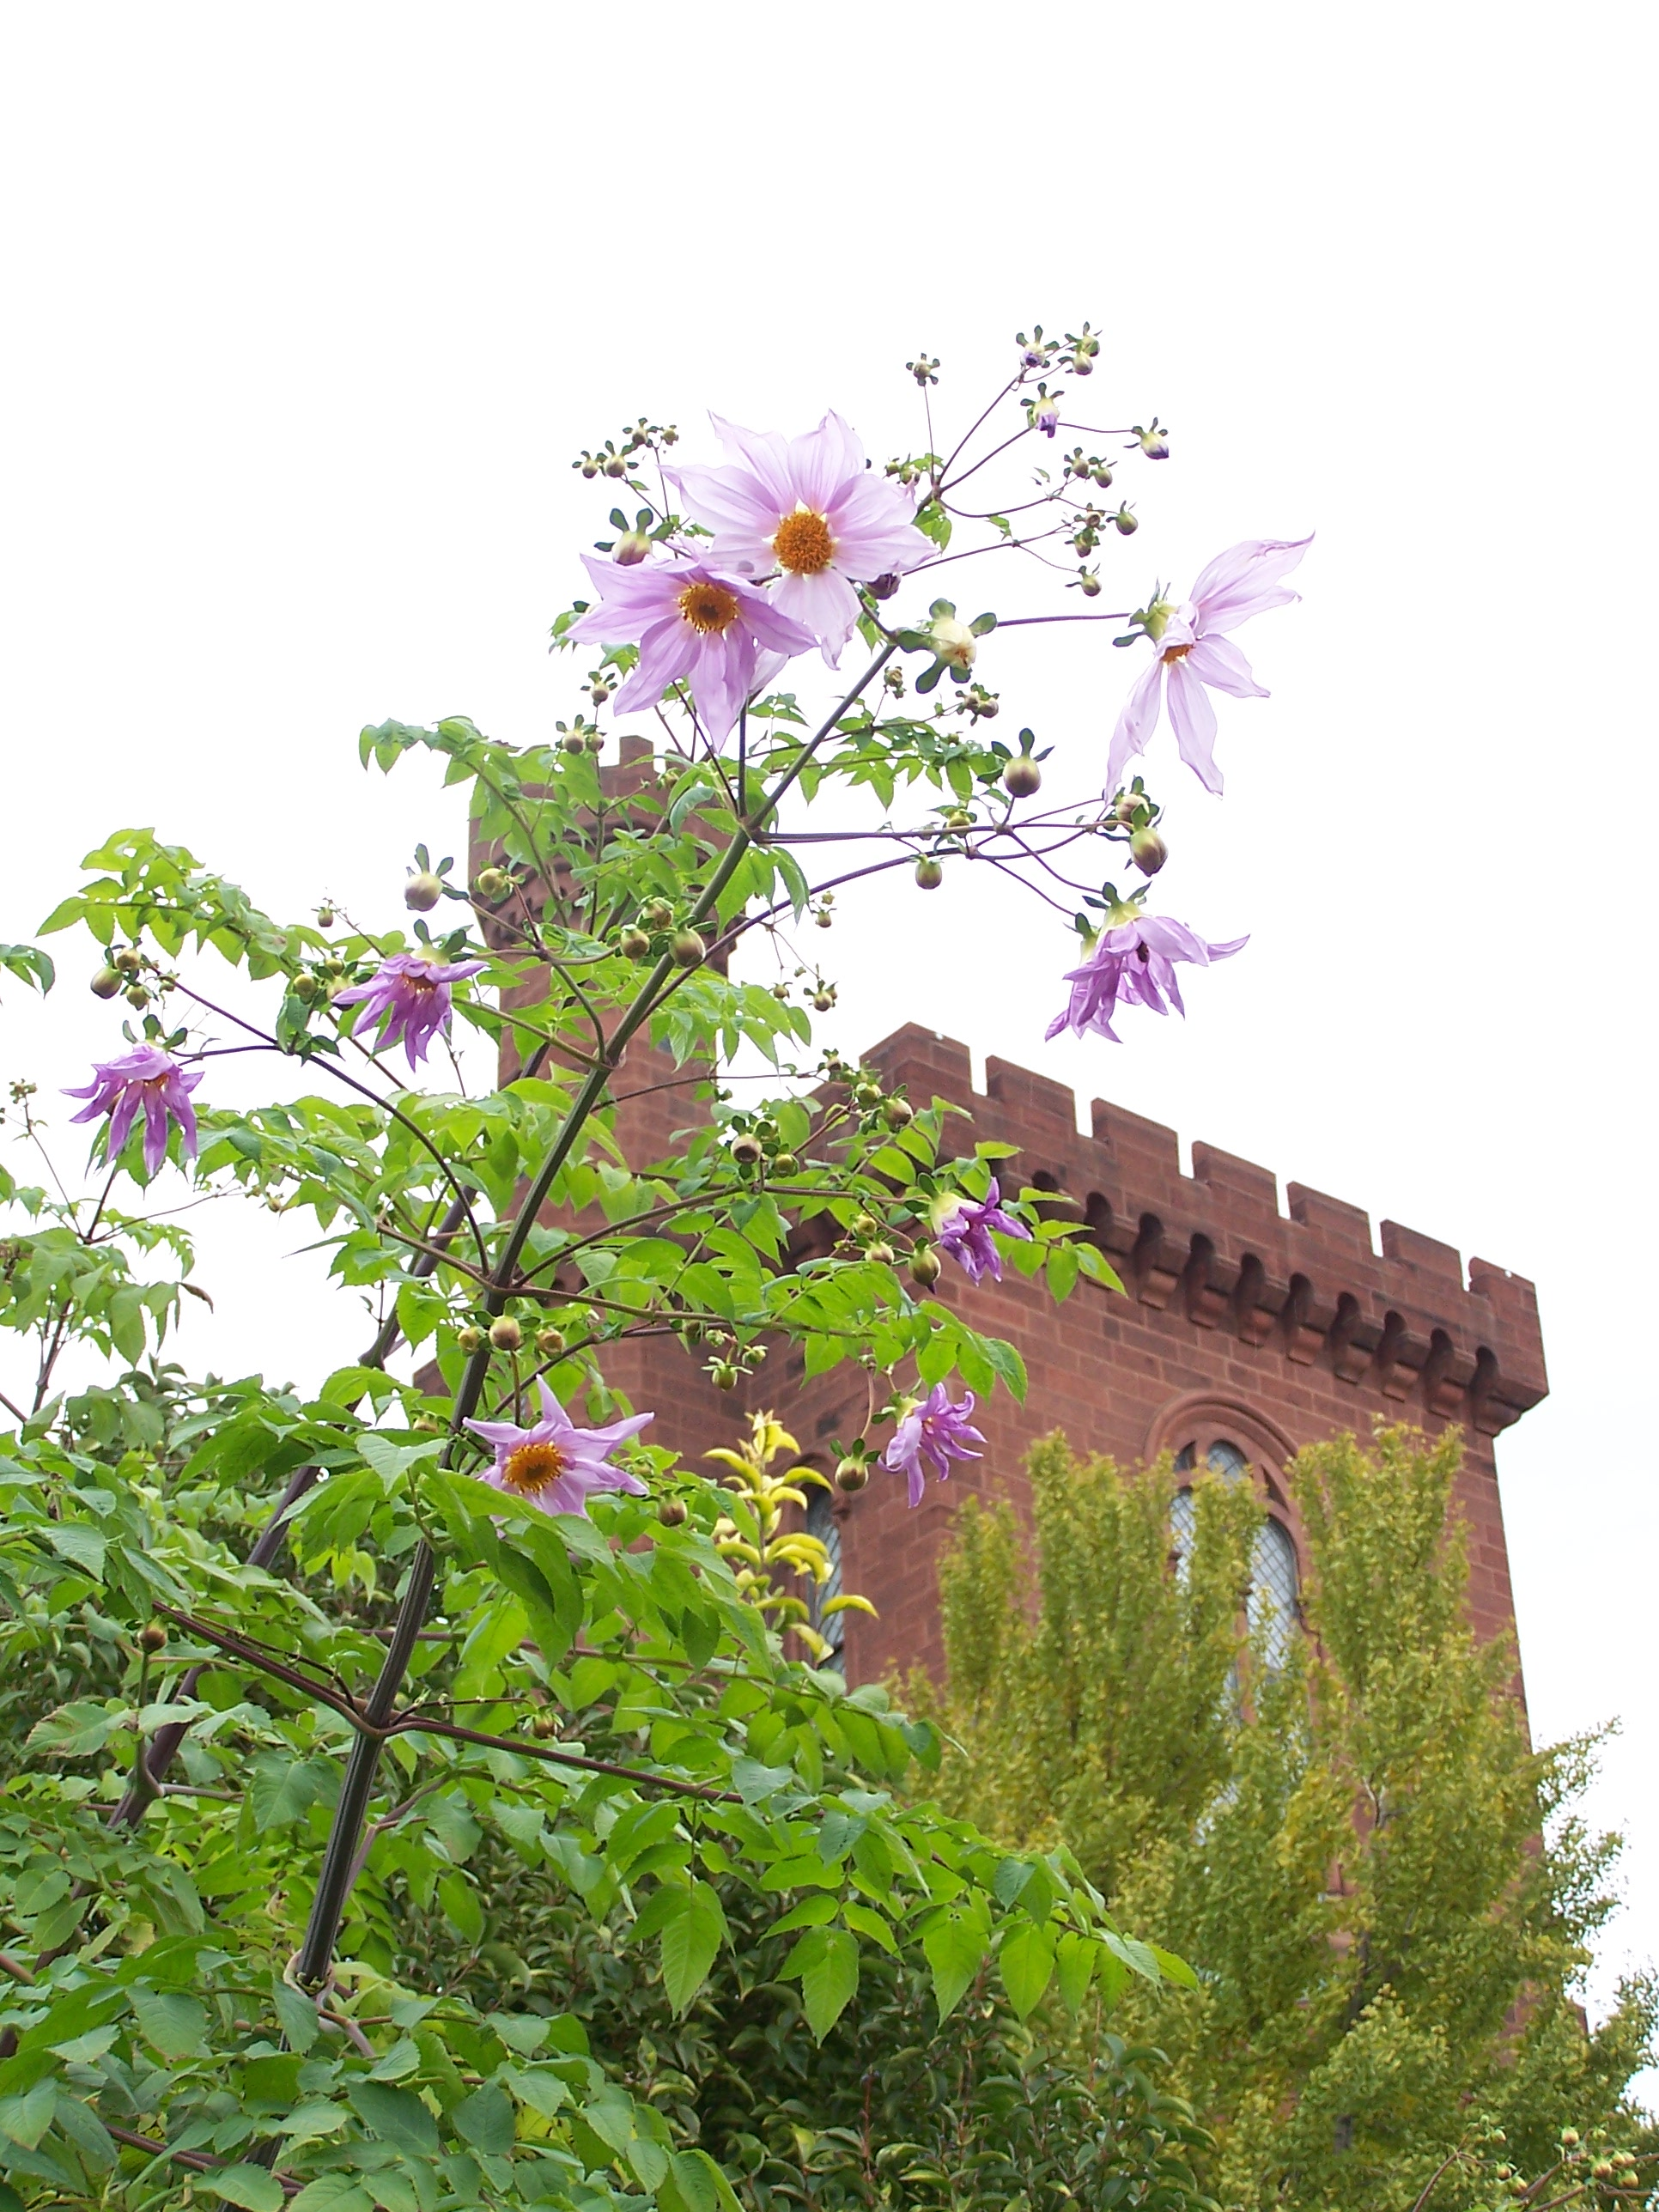 Dahlia Imperialis, NE Corner of Moongate Garden, behind the castle